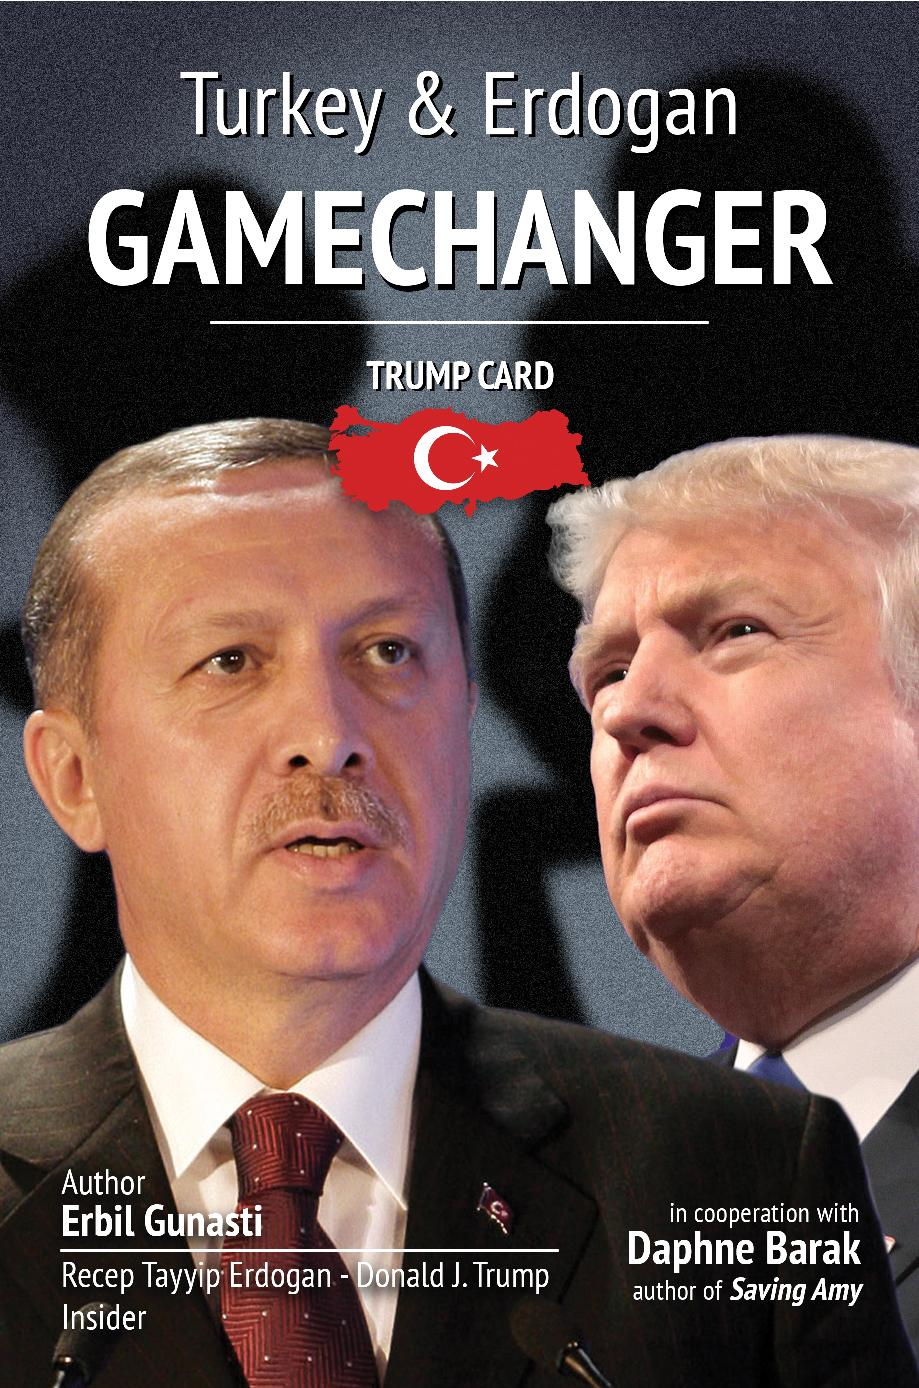 game_changer_cover_page[1].jpg